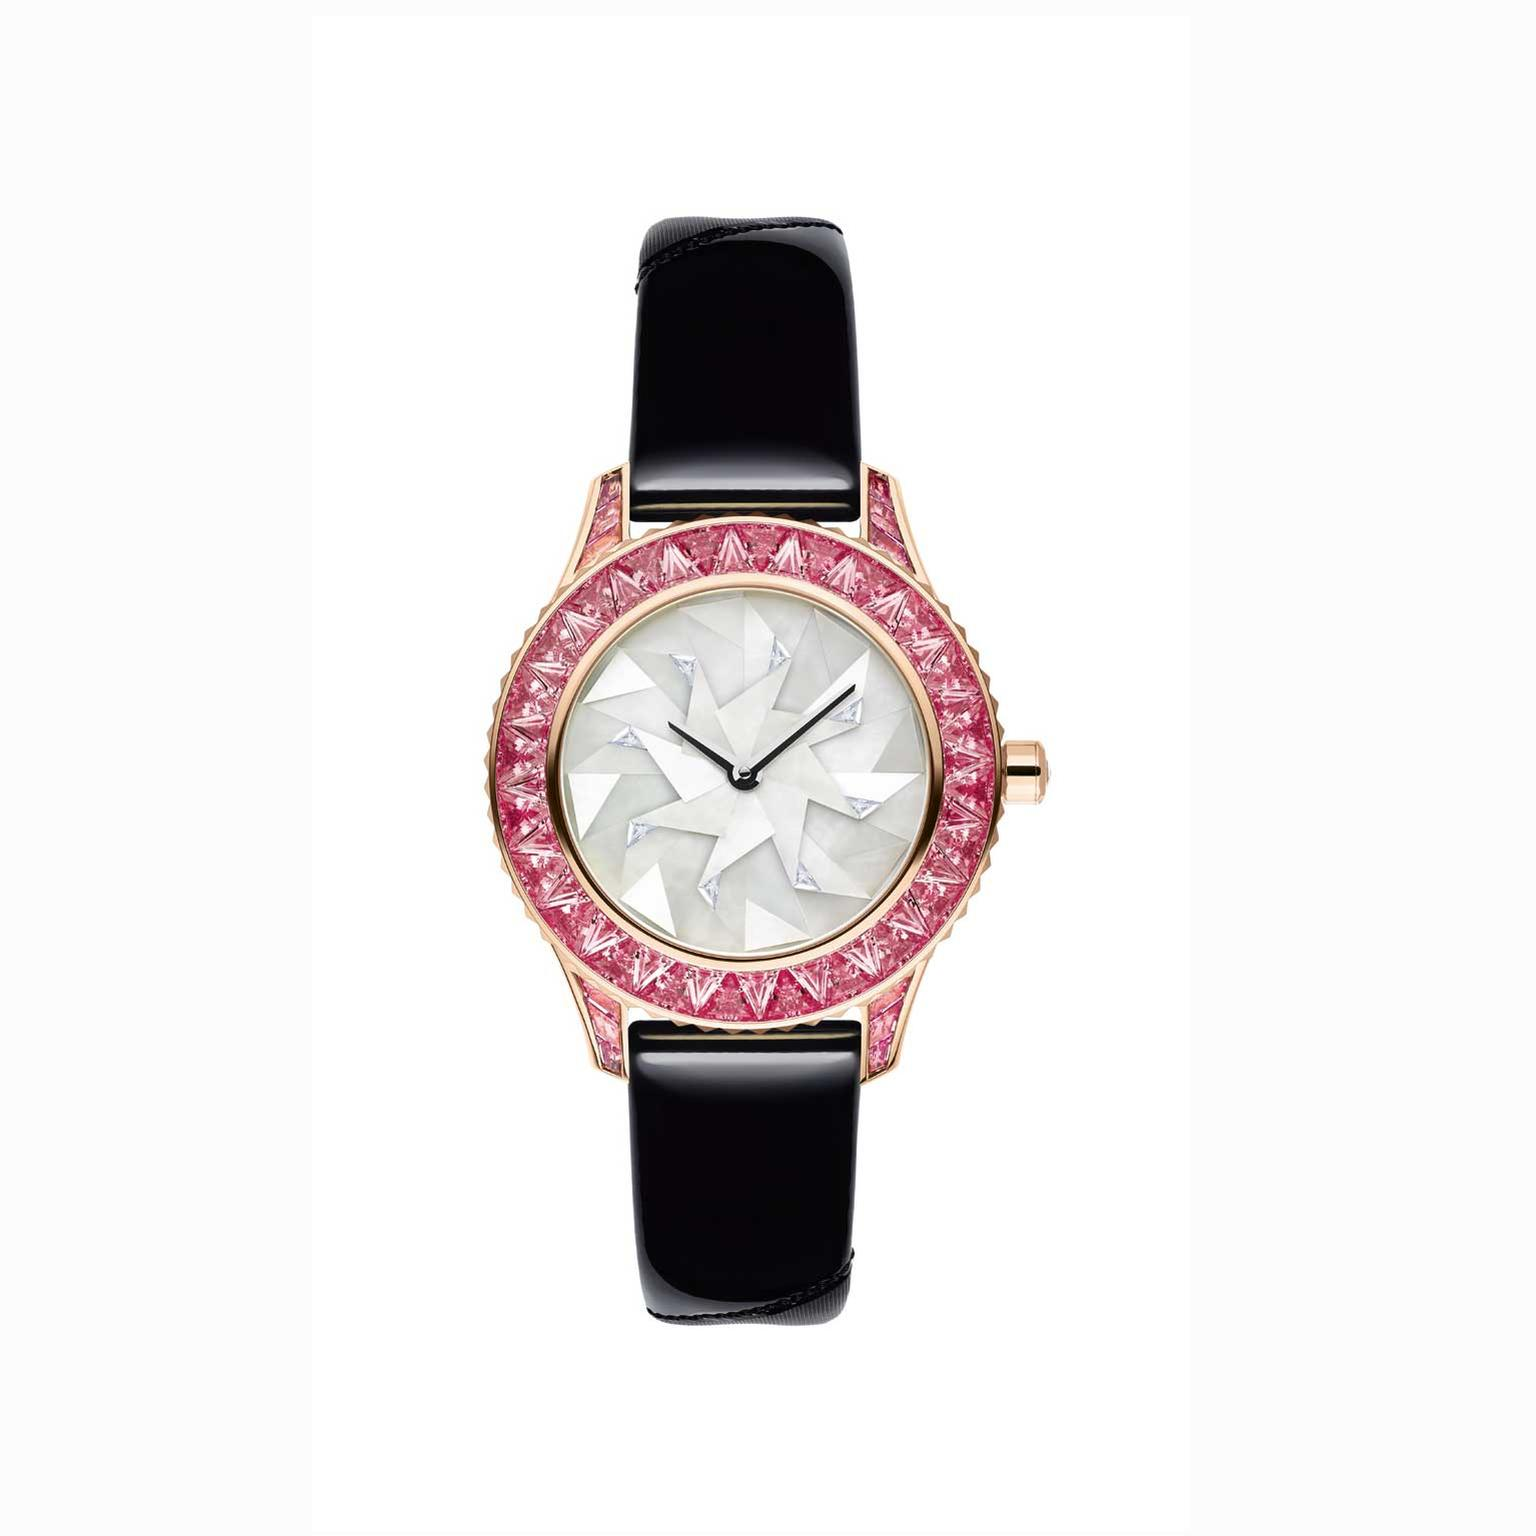 Dior Grand Soir Origami watch with pink sapphires